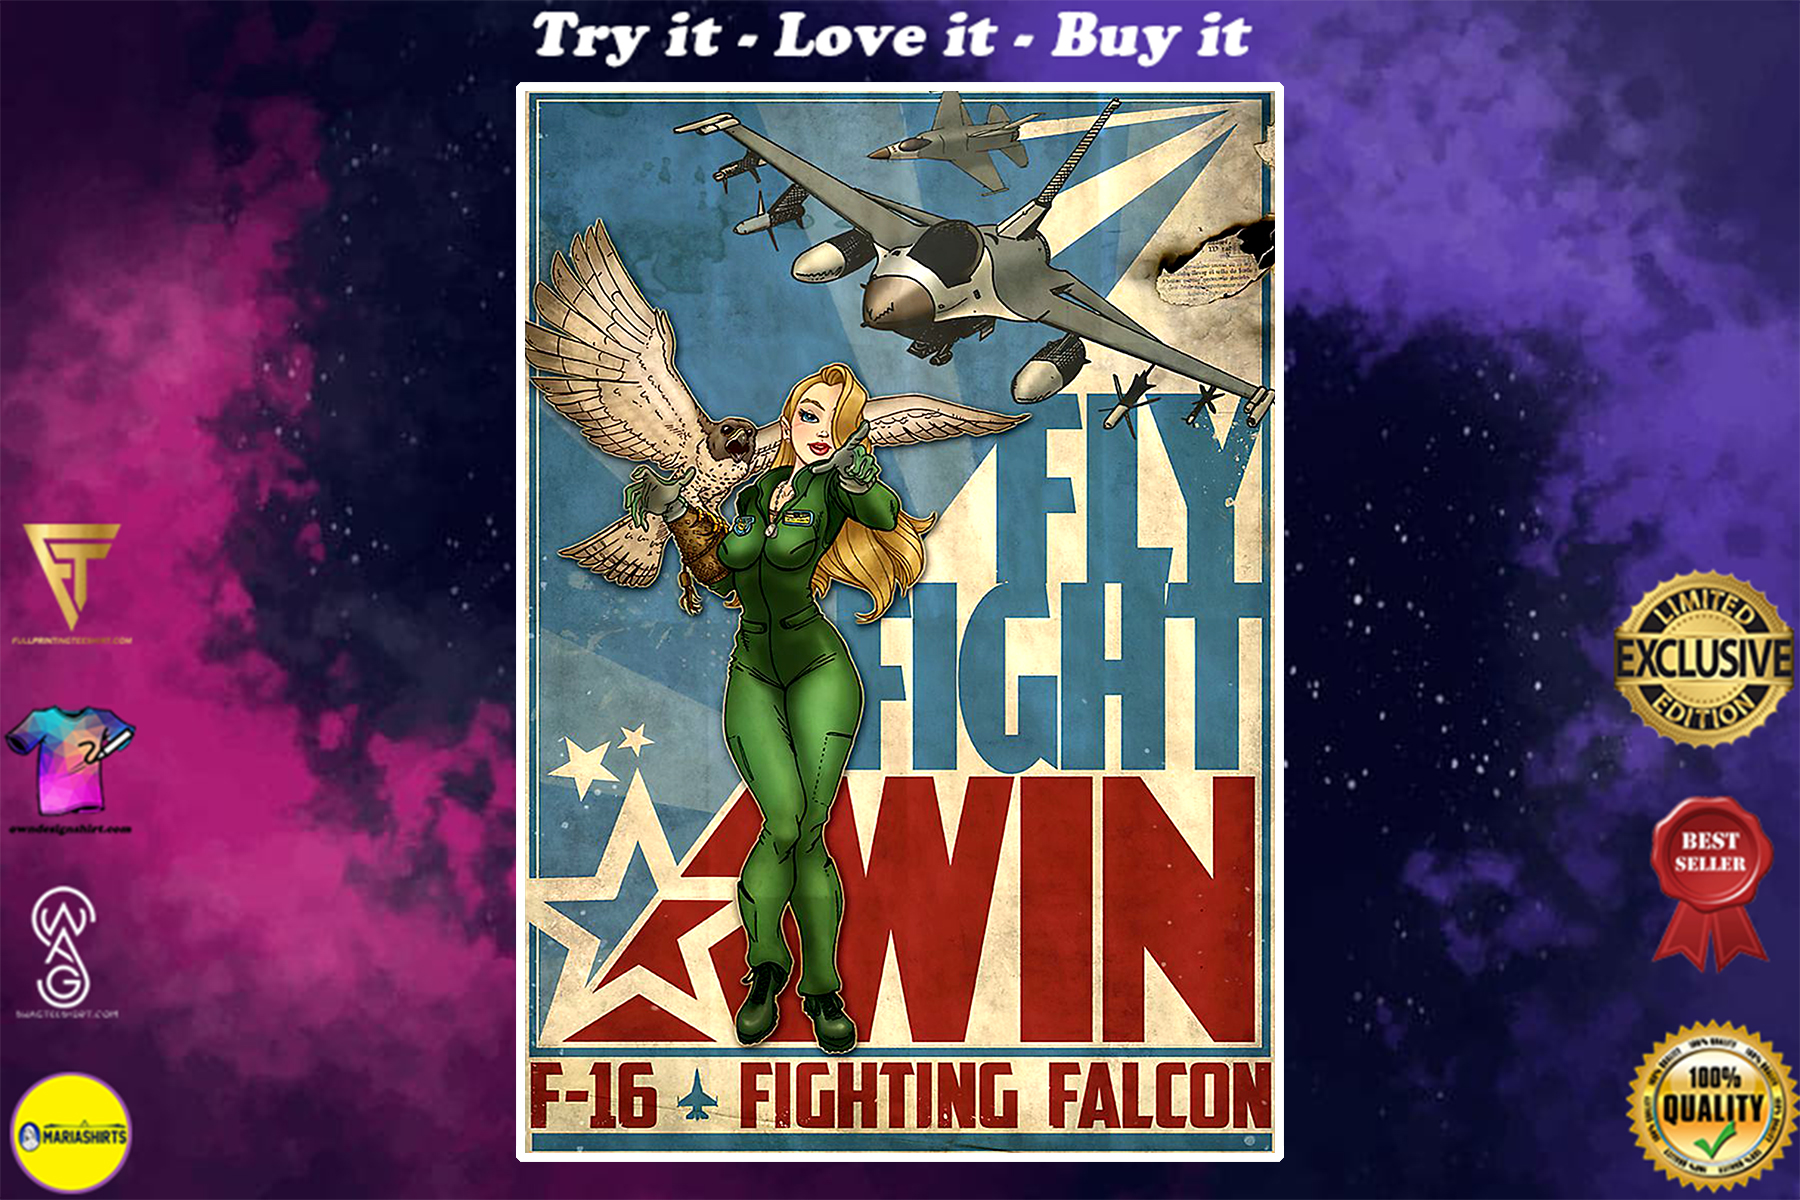 vintage fly fight win f-16 fighting falcon poster